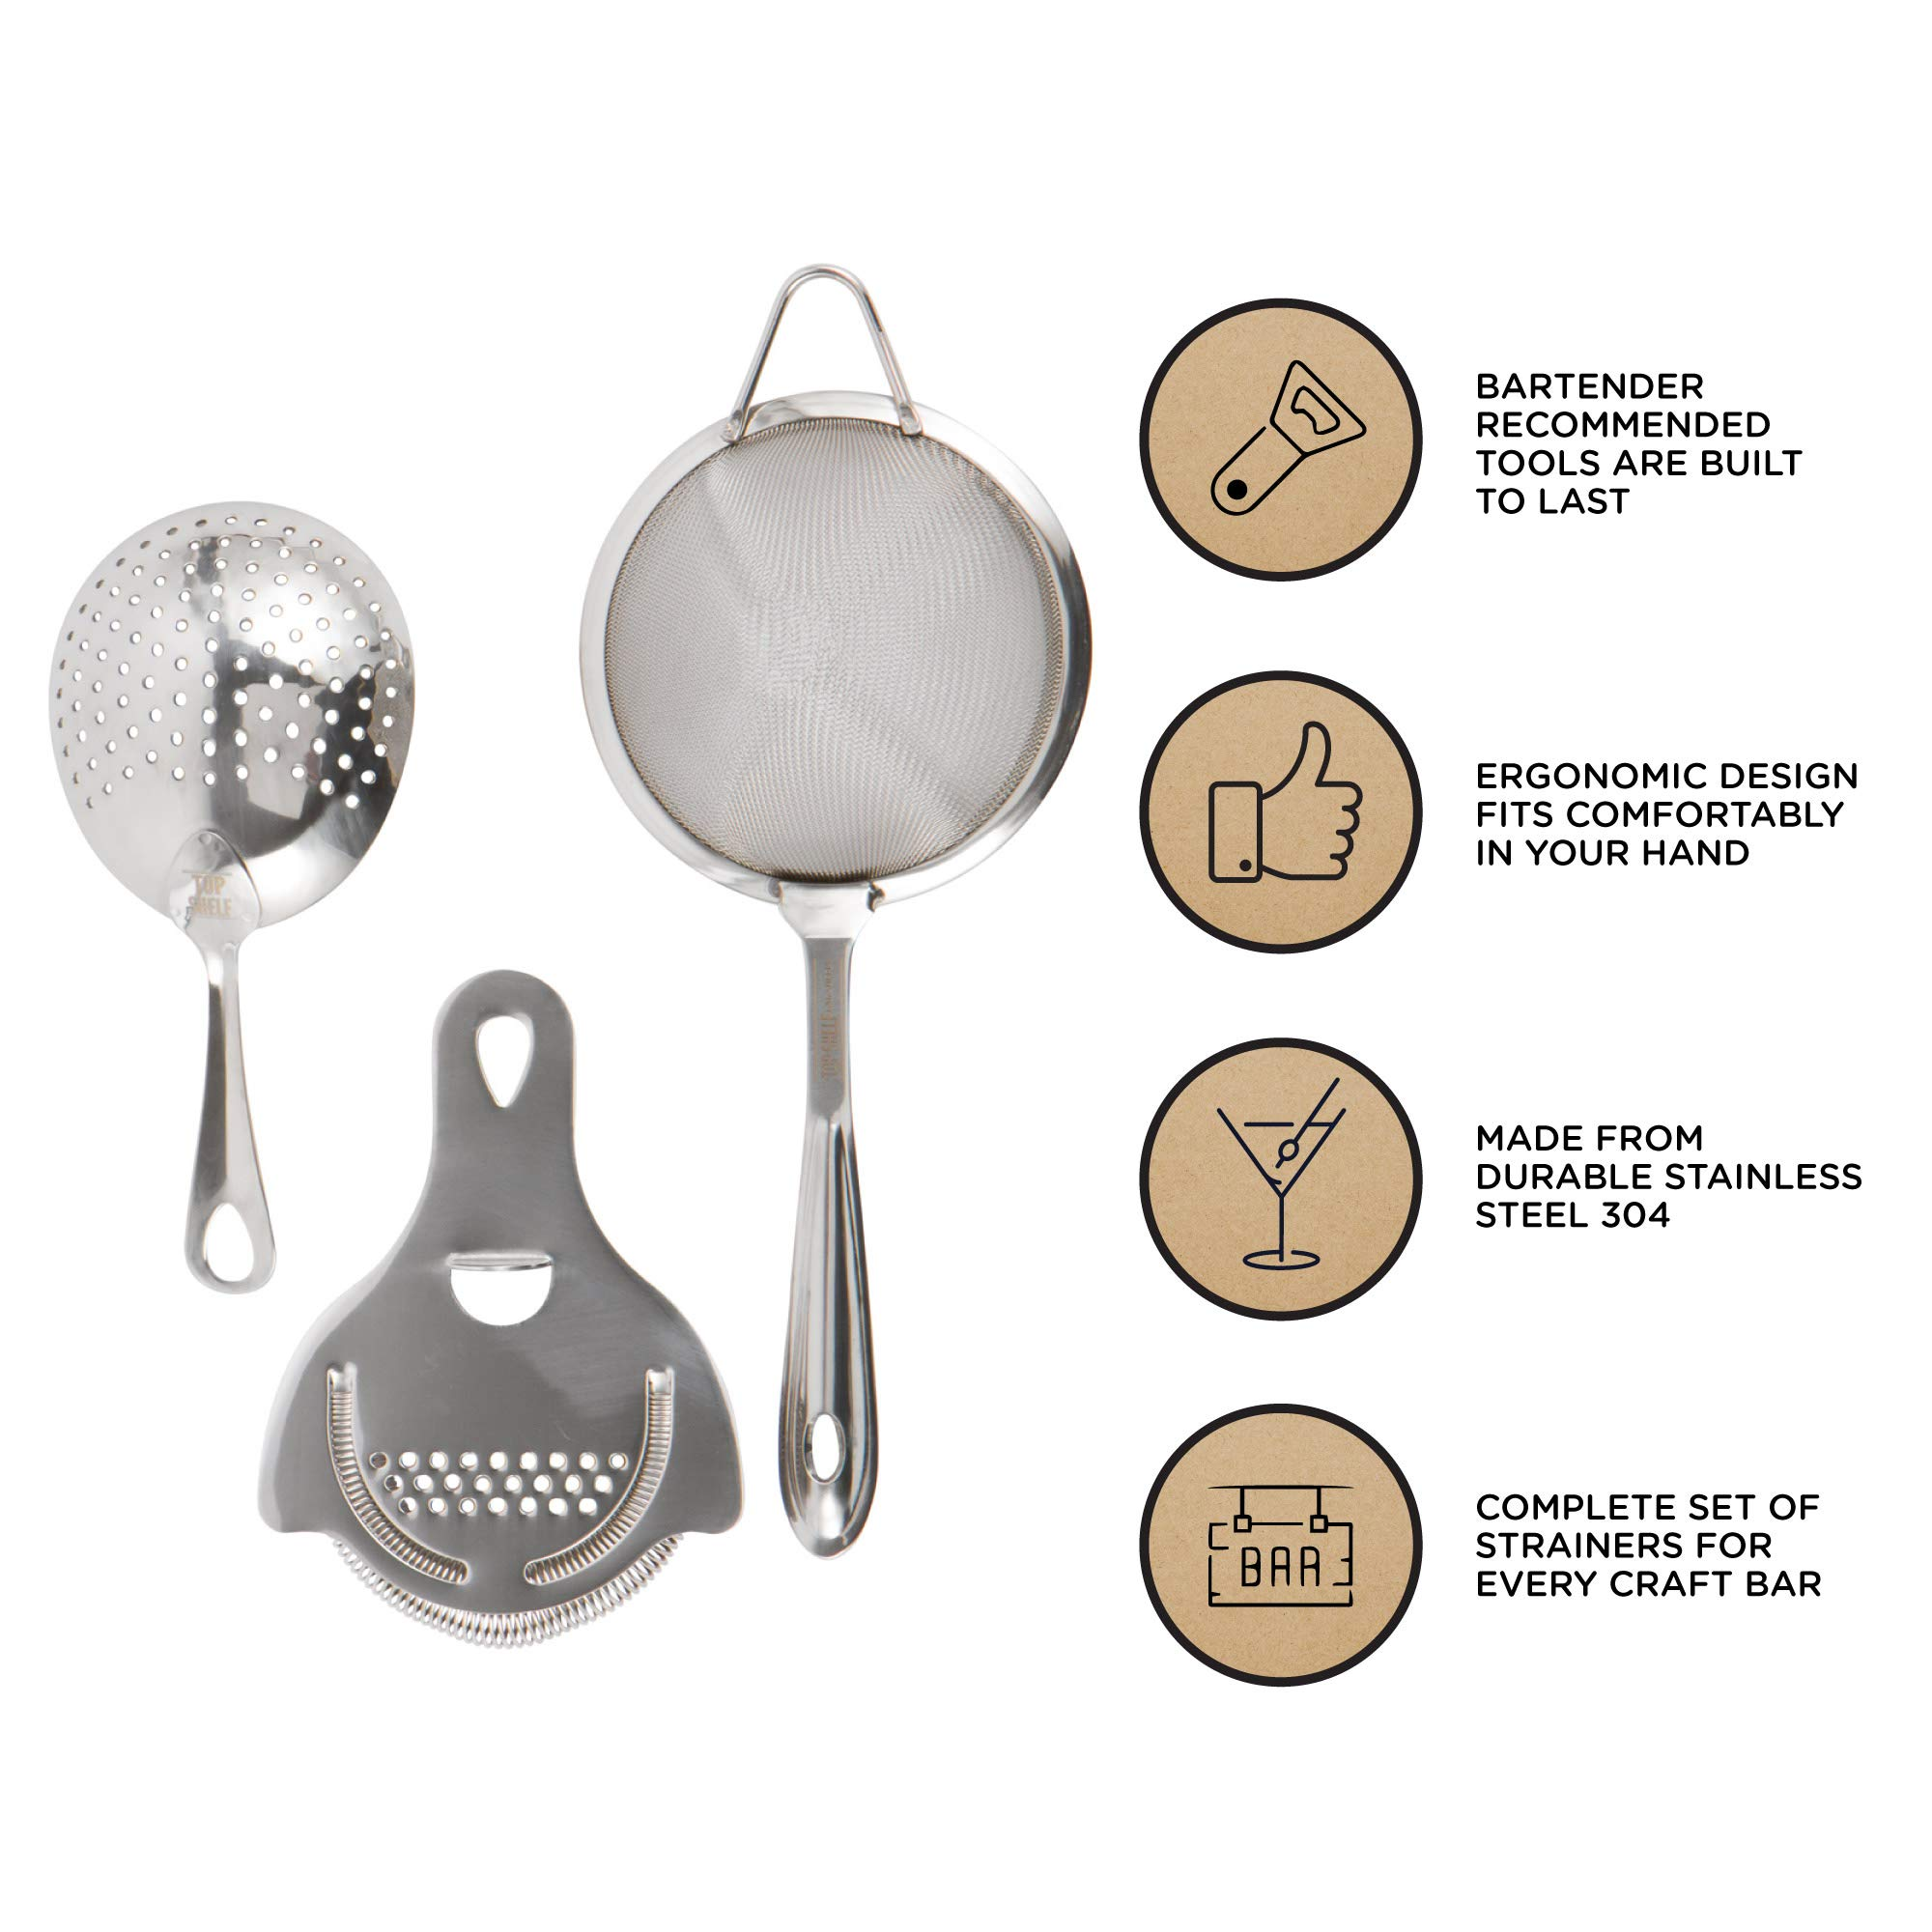 Cocktail Strainer Set: Stainless Steel Hawthorne Strainer, Julep Strainer and Conical Fine-Mesh Strainer by Top Shelf Bar Supply by Top Shelf Bar Supply (Image #2)